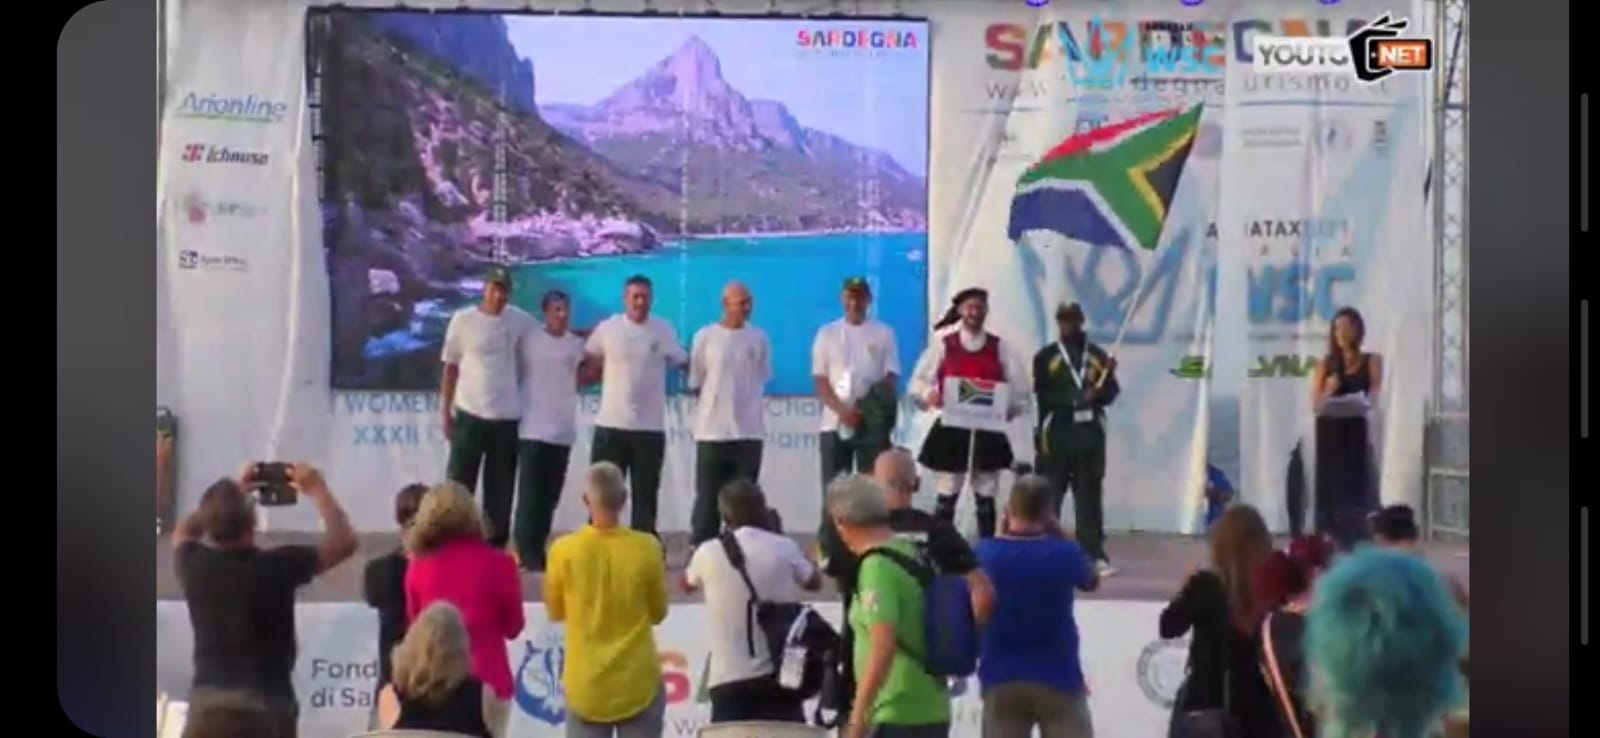 South African Worlds Springbok team on the stage at the opening ceremony in Sardinia